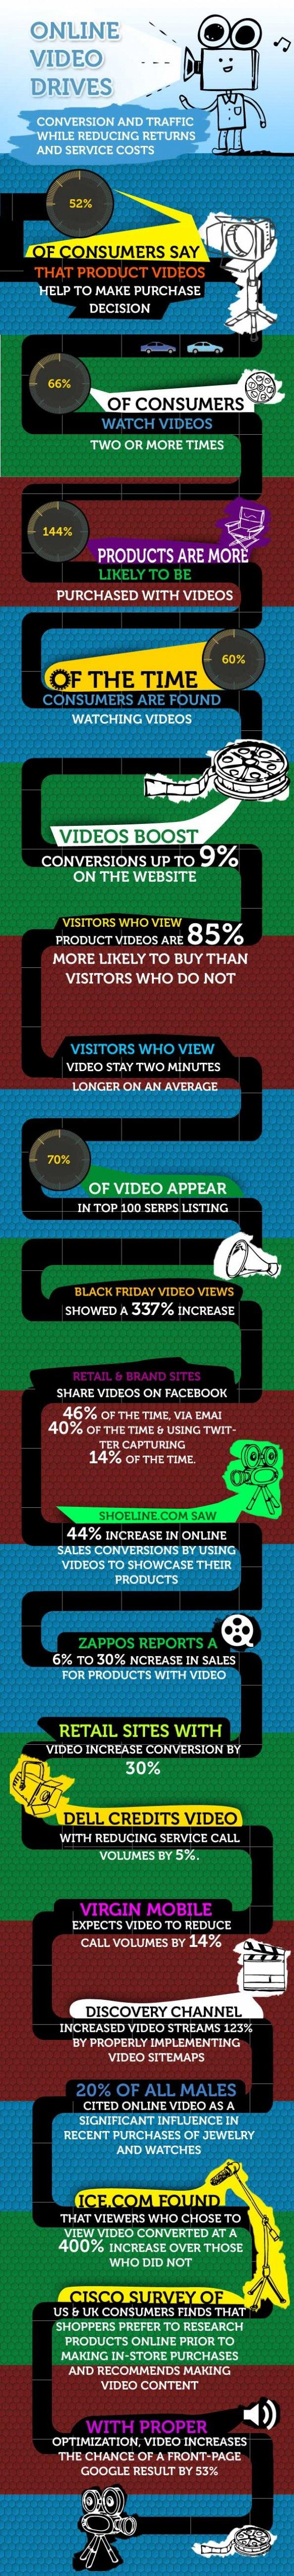 Video marketing has made a huge impact on how businesses are marketing to the technology driven audiences. Not only is video more engaging than plain text but it can educate and deliever much more information in little time. This infographic, from our friends at Genetech Solutions, displays the impact of video marketing and its effect on driving conversion and traffic in the marketing place. Learn more about the Impact of Video Marketing on our blog at www.smallscreenproducer.com